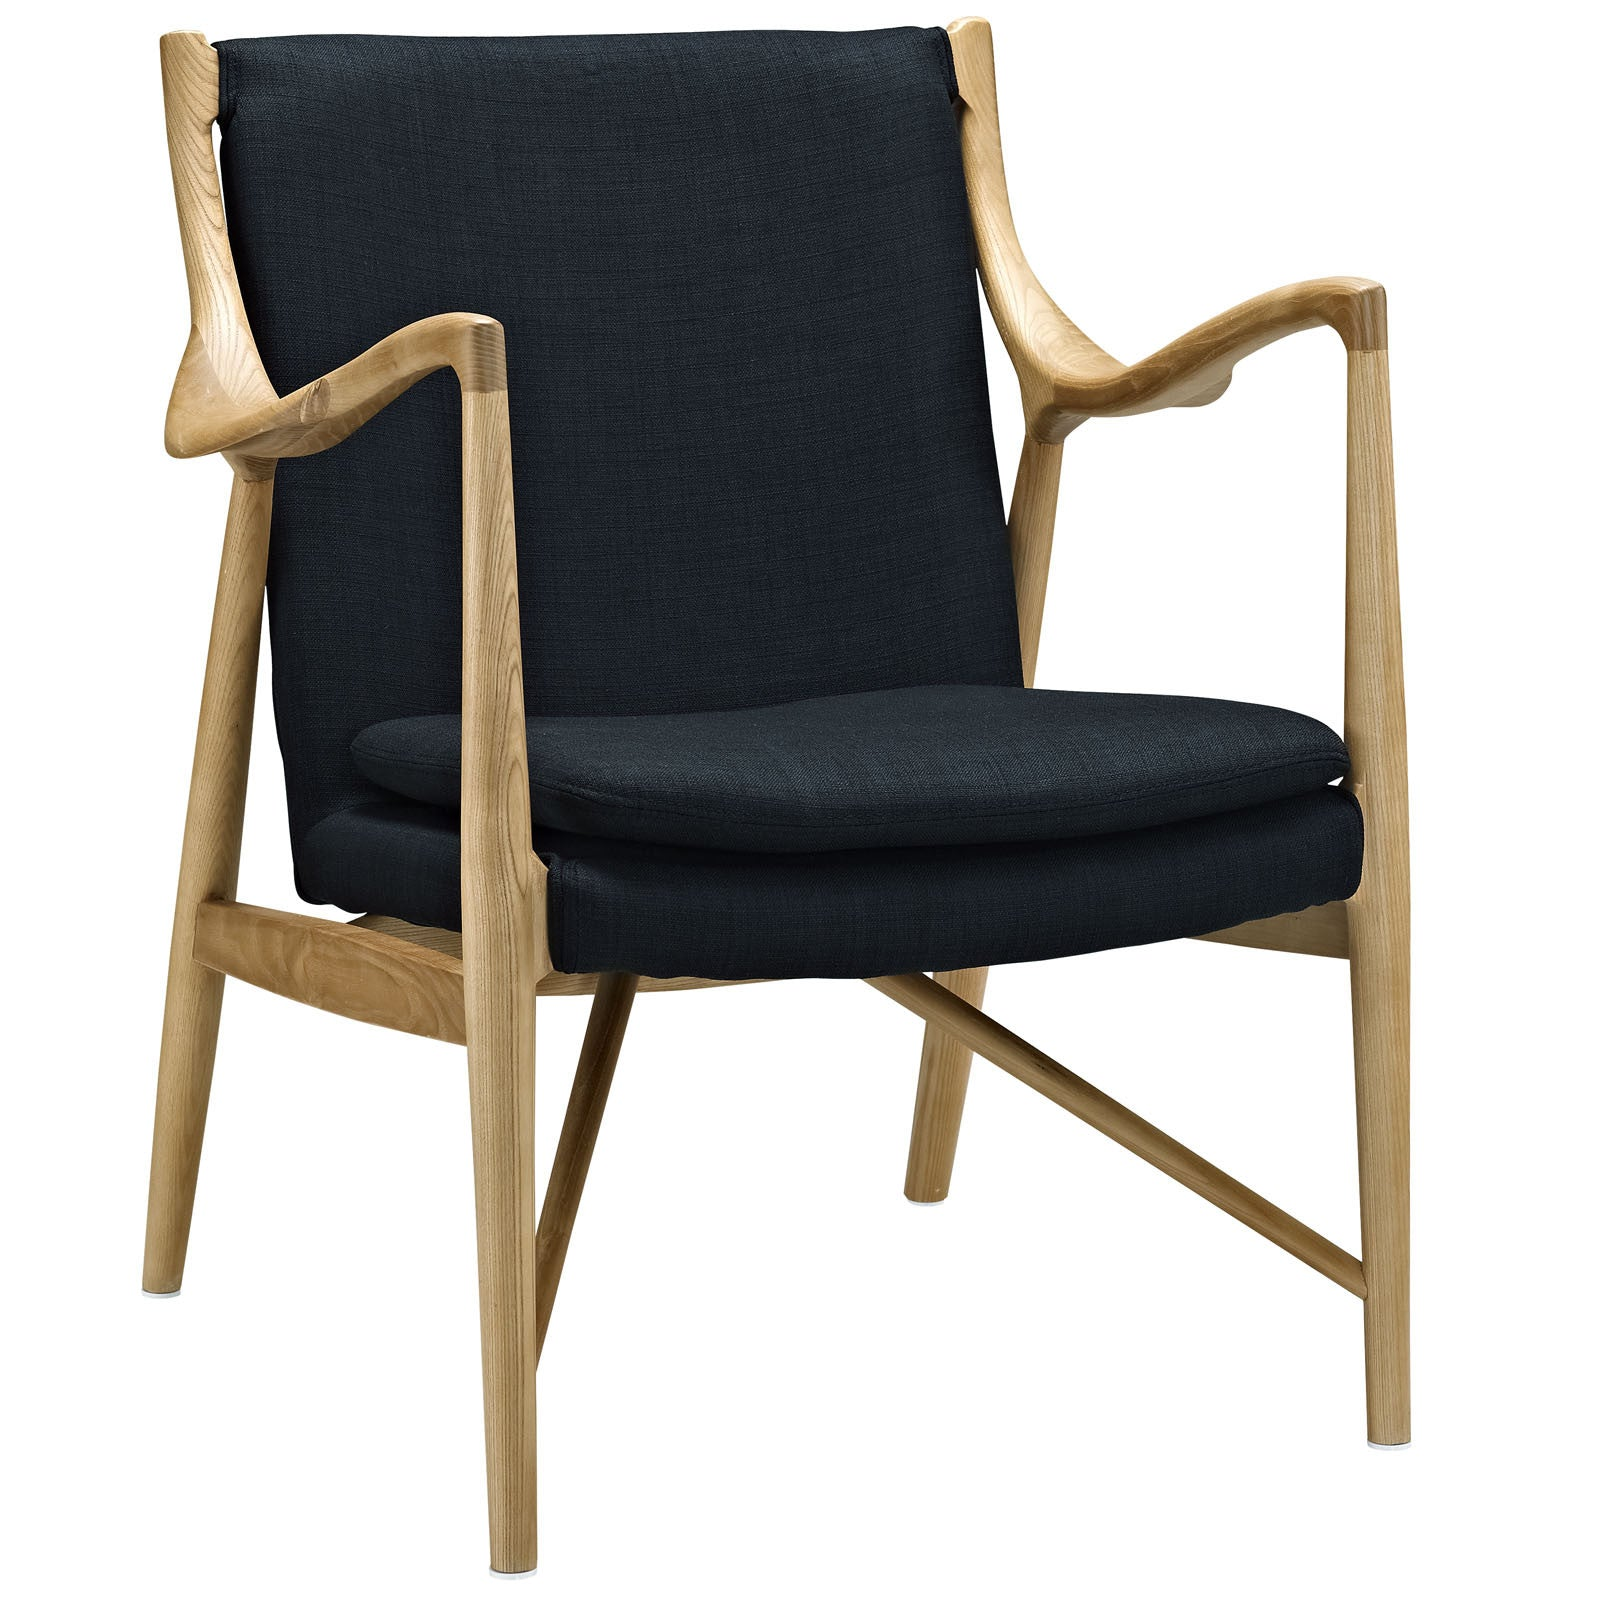 Finn Juhl No.45 Chair Reproduction ( Fabric ) - The Modern Source - 1 ...  sc 1 st  The Modern Source & Finn Juhl No.45 Chair Reproduction ( Fabric ) - The Modern Source